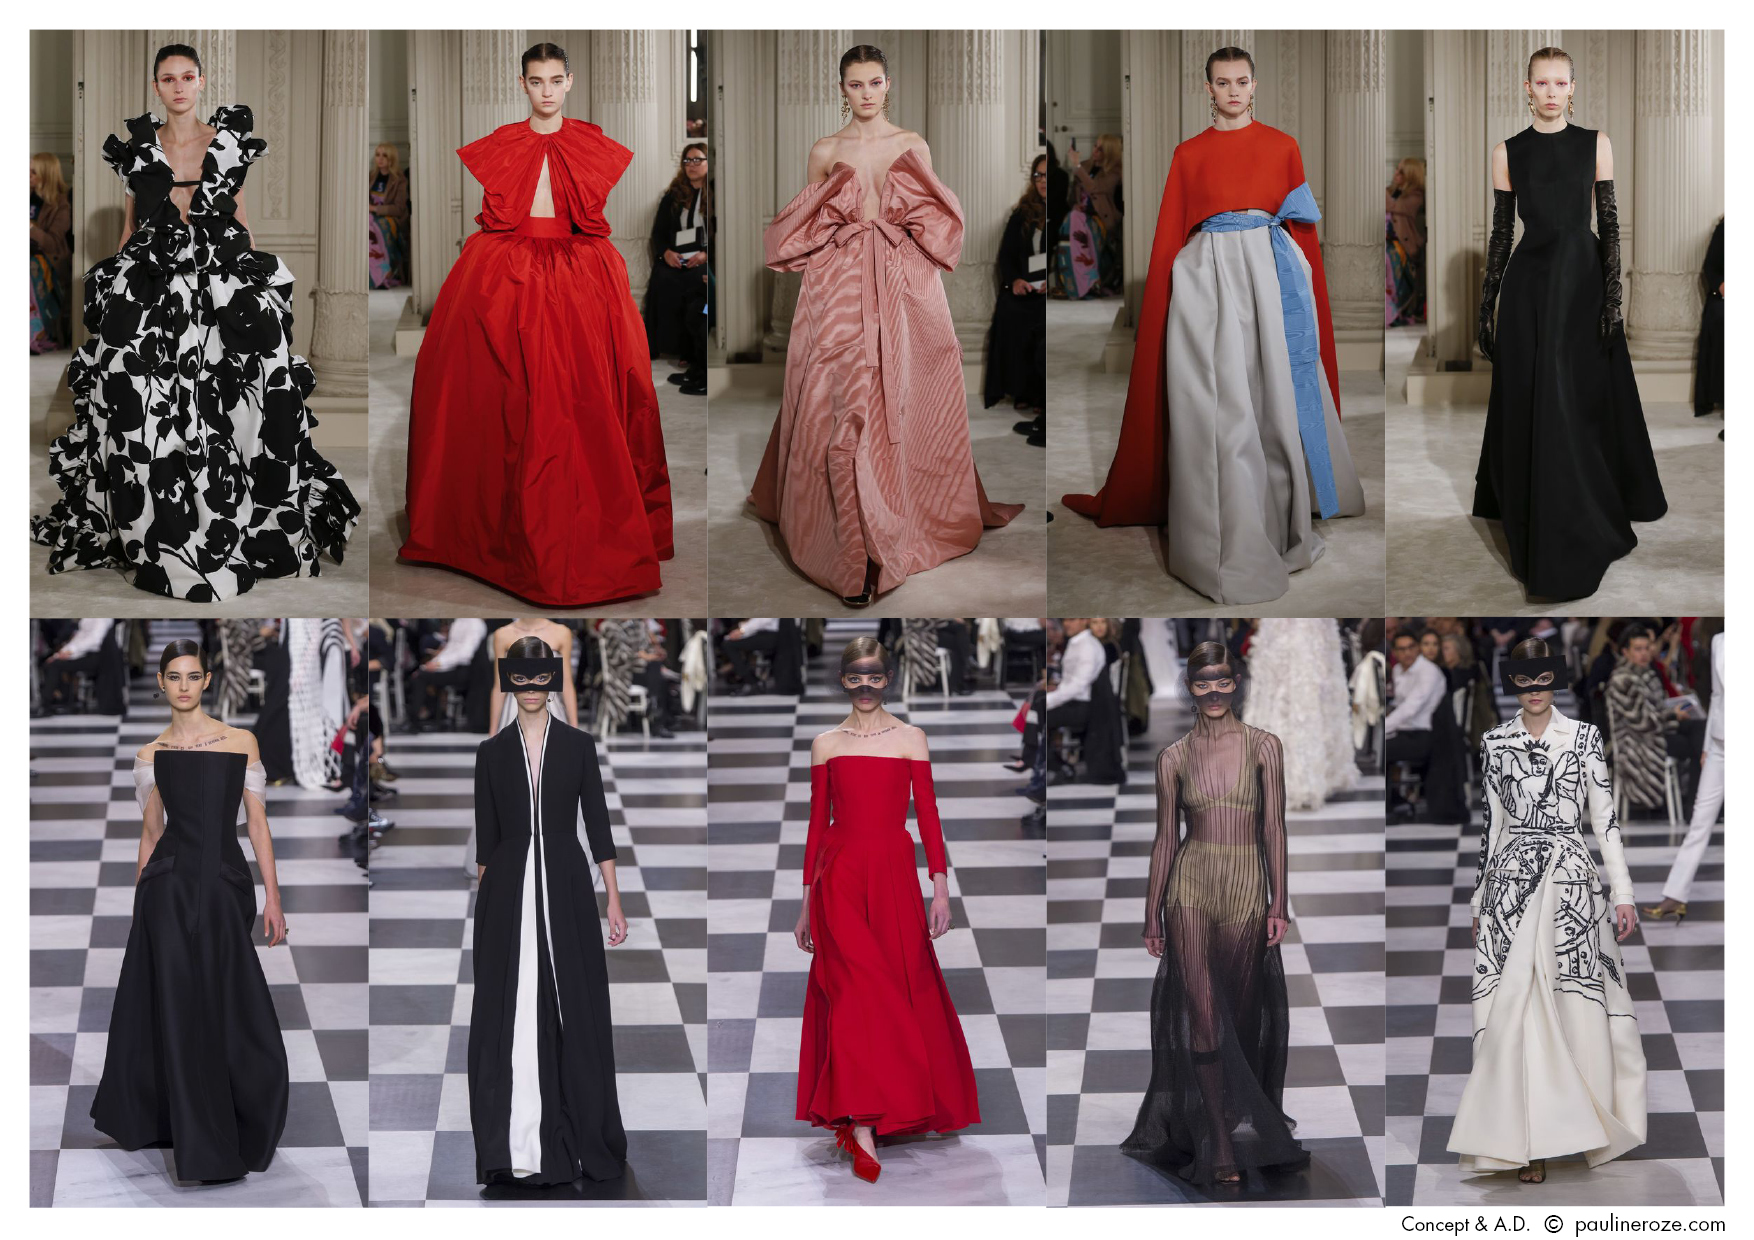 Top row, all, Valentino Bottom row, all, Christian Dior